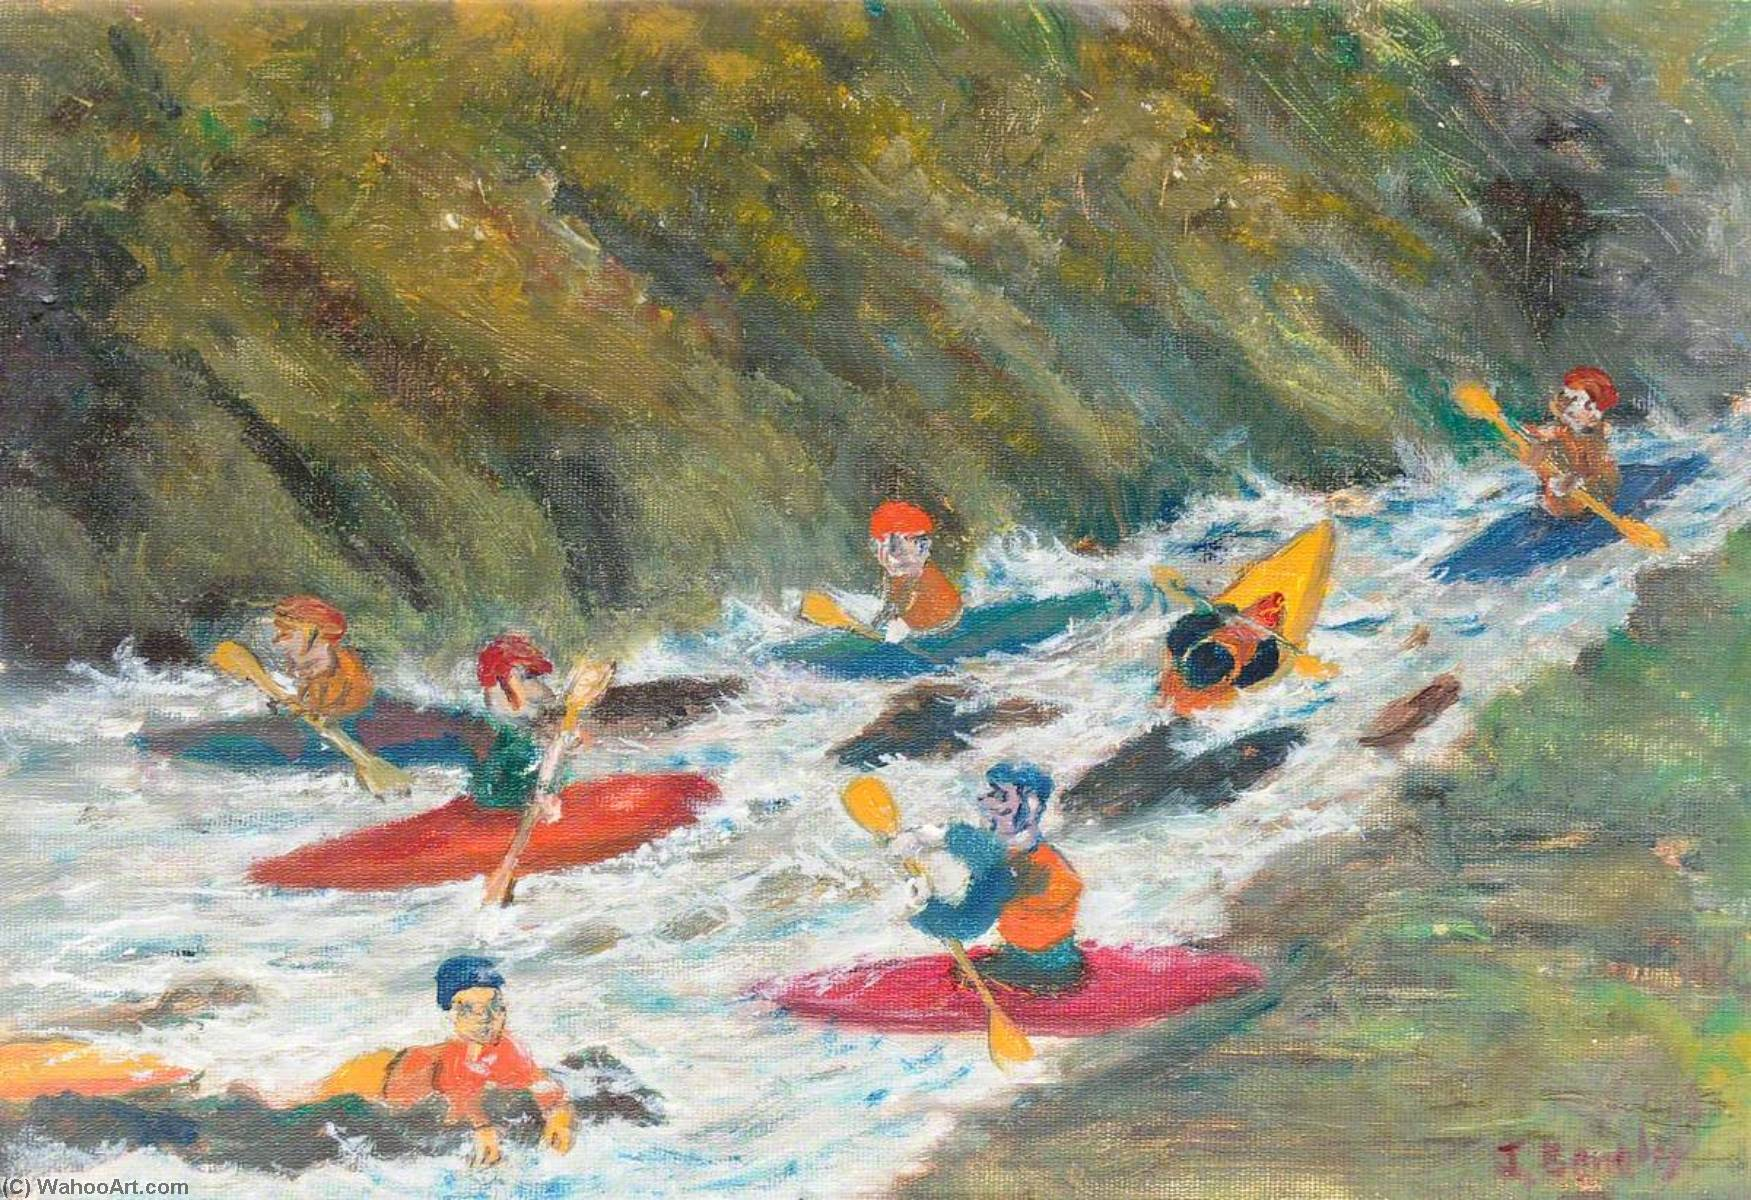 Slalom Practice, Dragon's Fall, Llangollen, Oil On Canvas by James Bentley